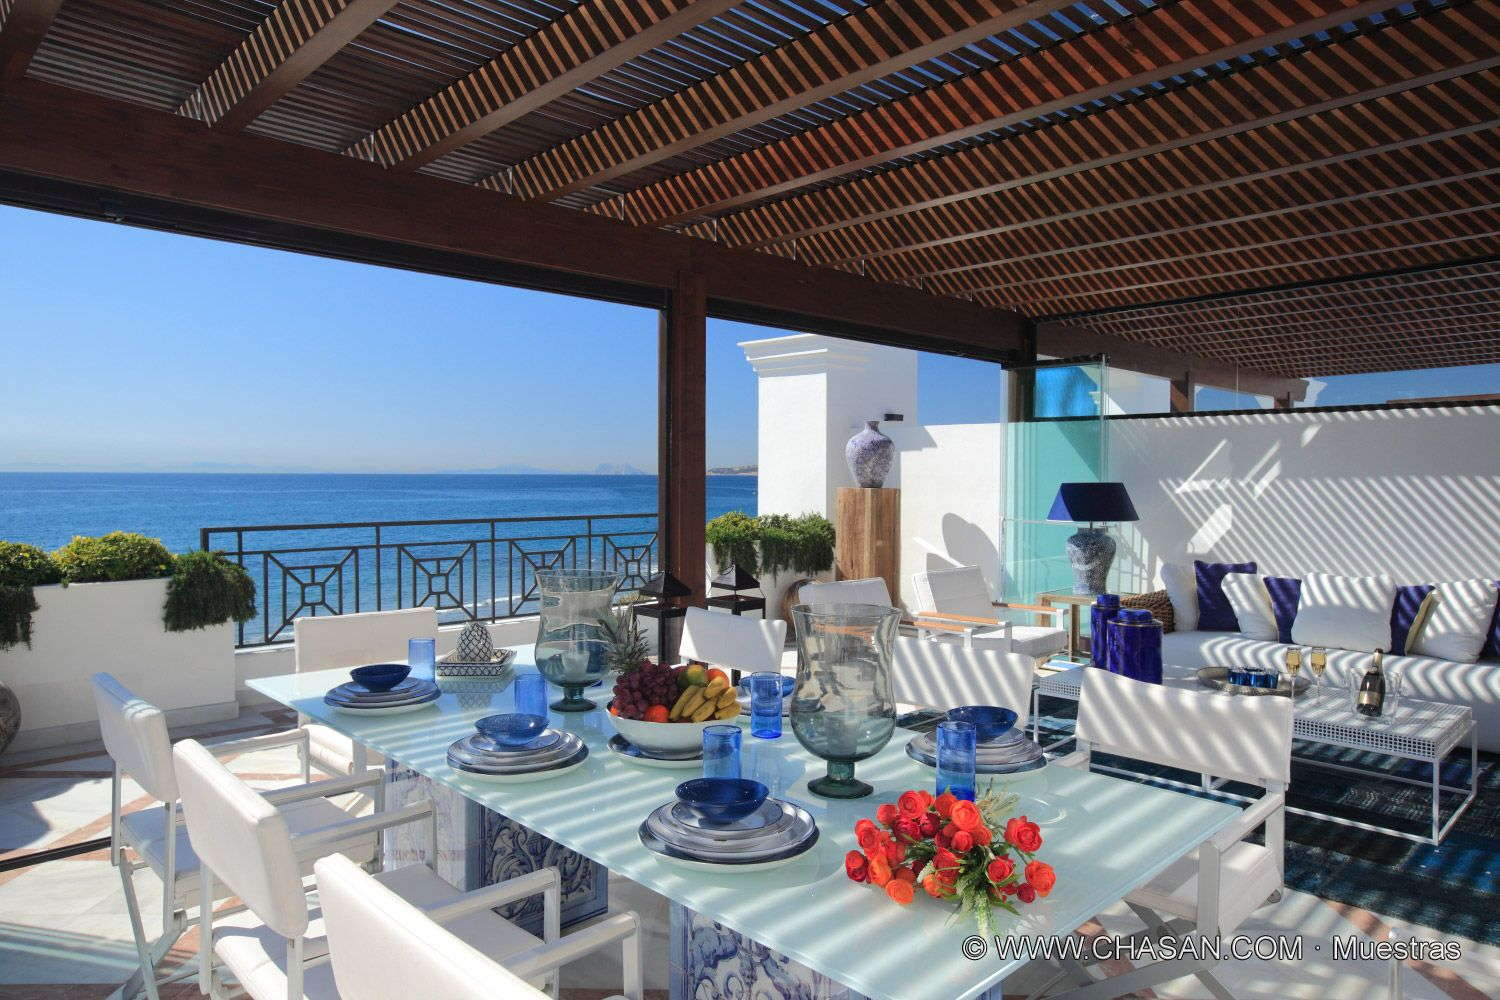 Exclusive and luxury new front line beach 5 bedroom duplex penthouse with panoramic views in Estepona